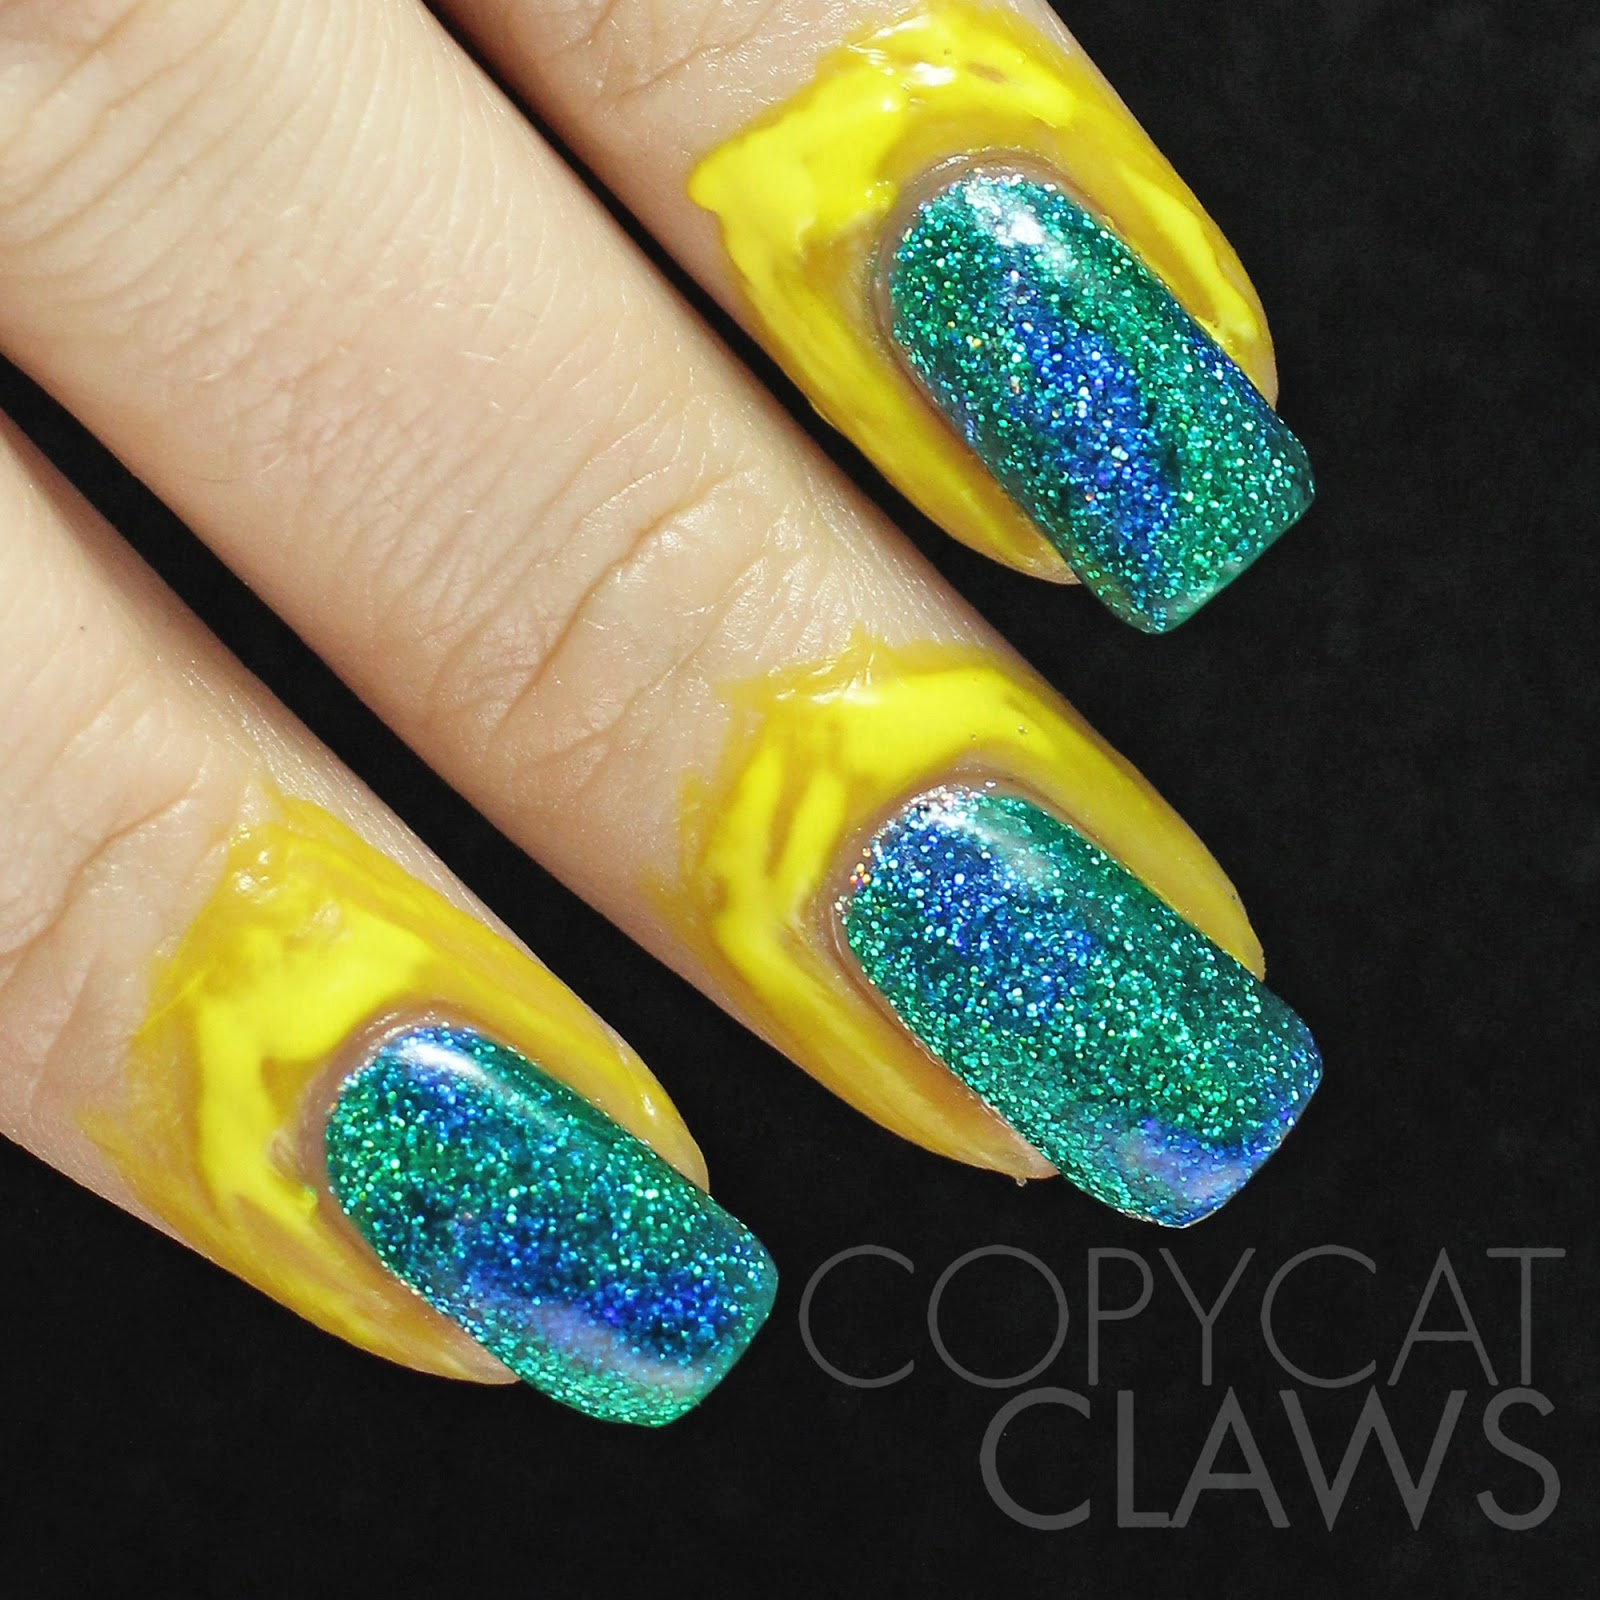 Copycat Claws: Nail Stamping Over Glitter And Color4Nails